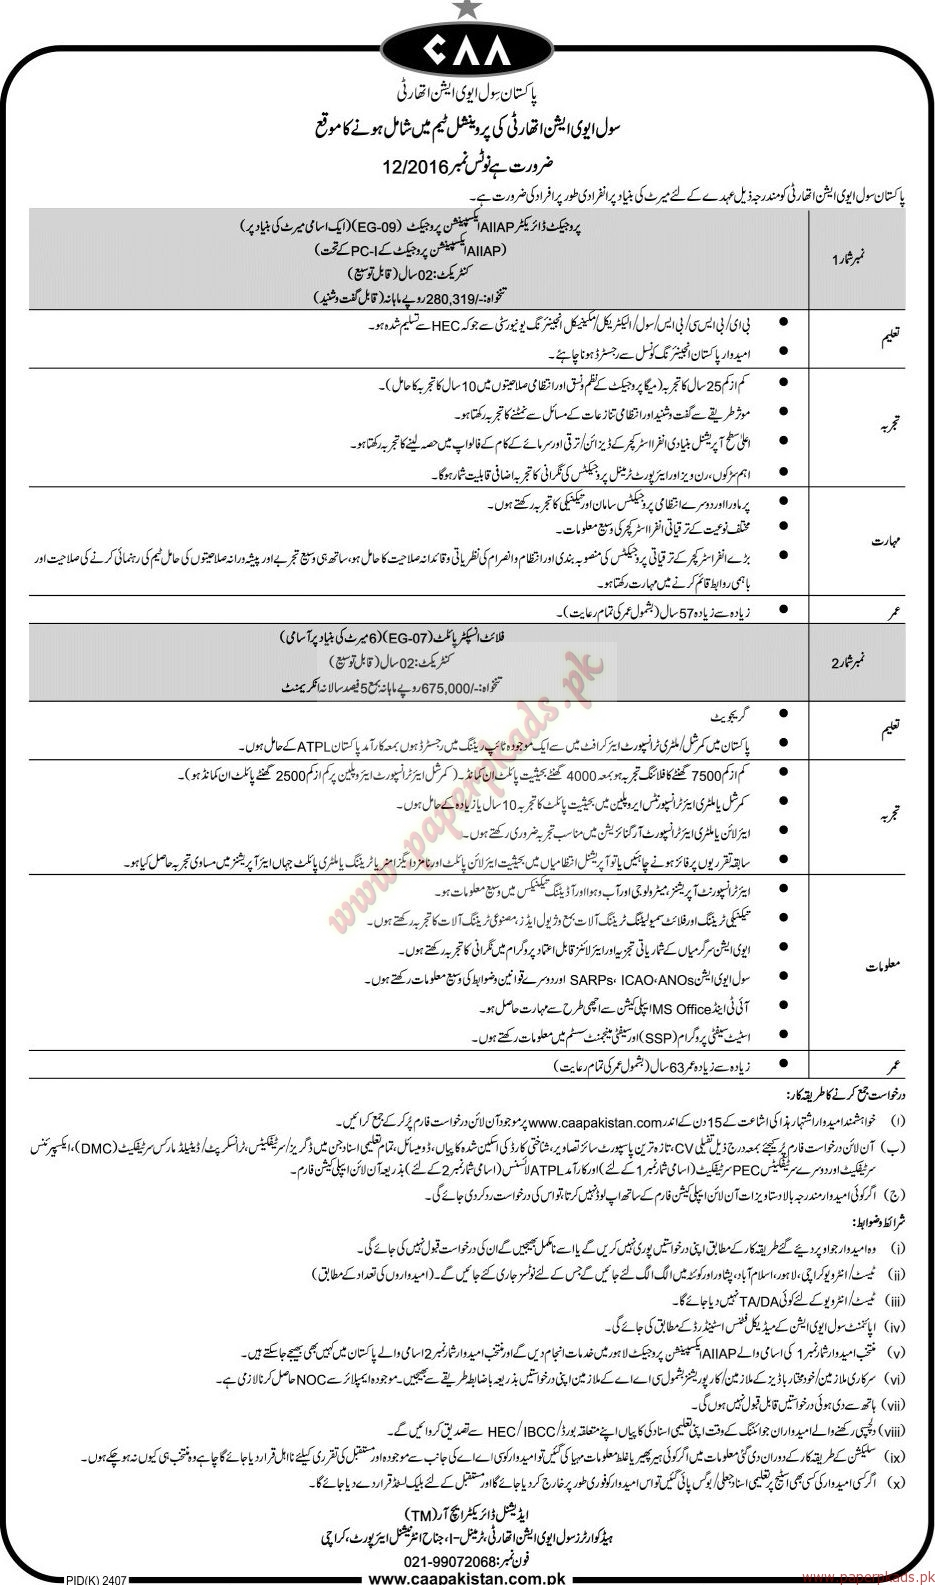 Pakistan Civil Aviation Authority Jobs - Jang Jobs ads 01 January 2017